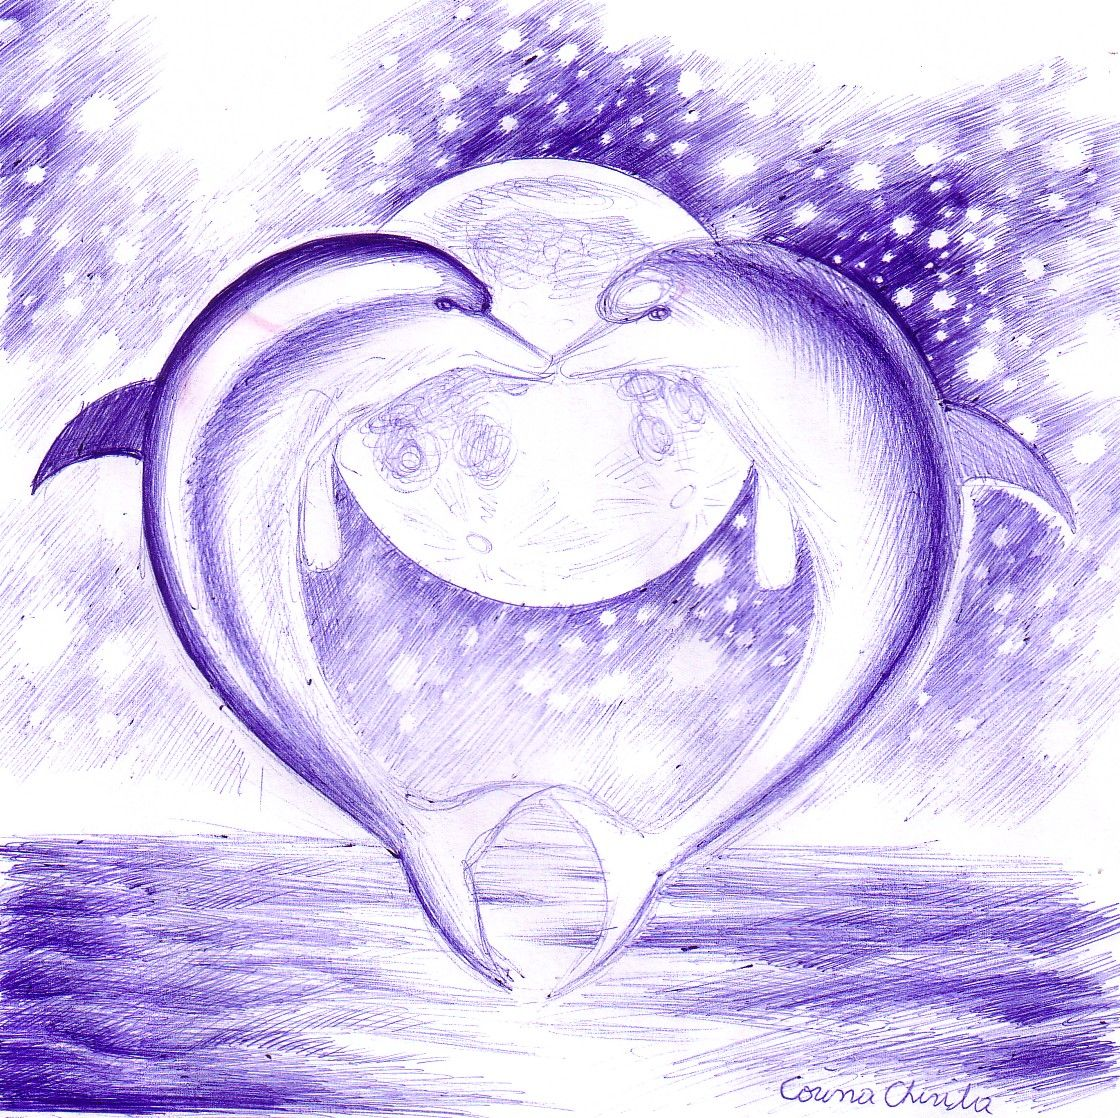 Dolphin Drawings Yahoo Image Search Results Dolphin Drawing Dolphin Art Dolphins Tattoo